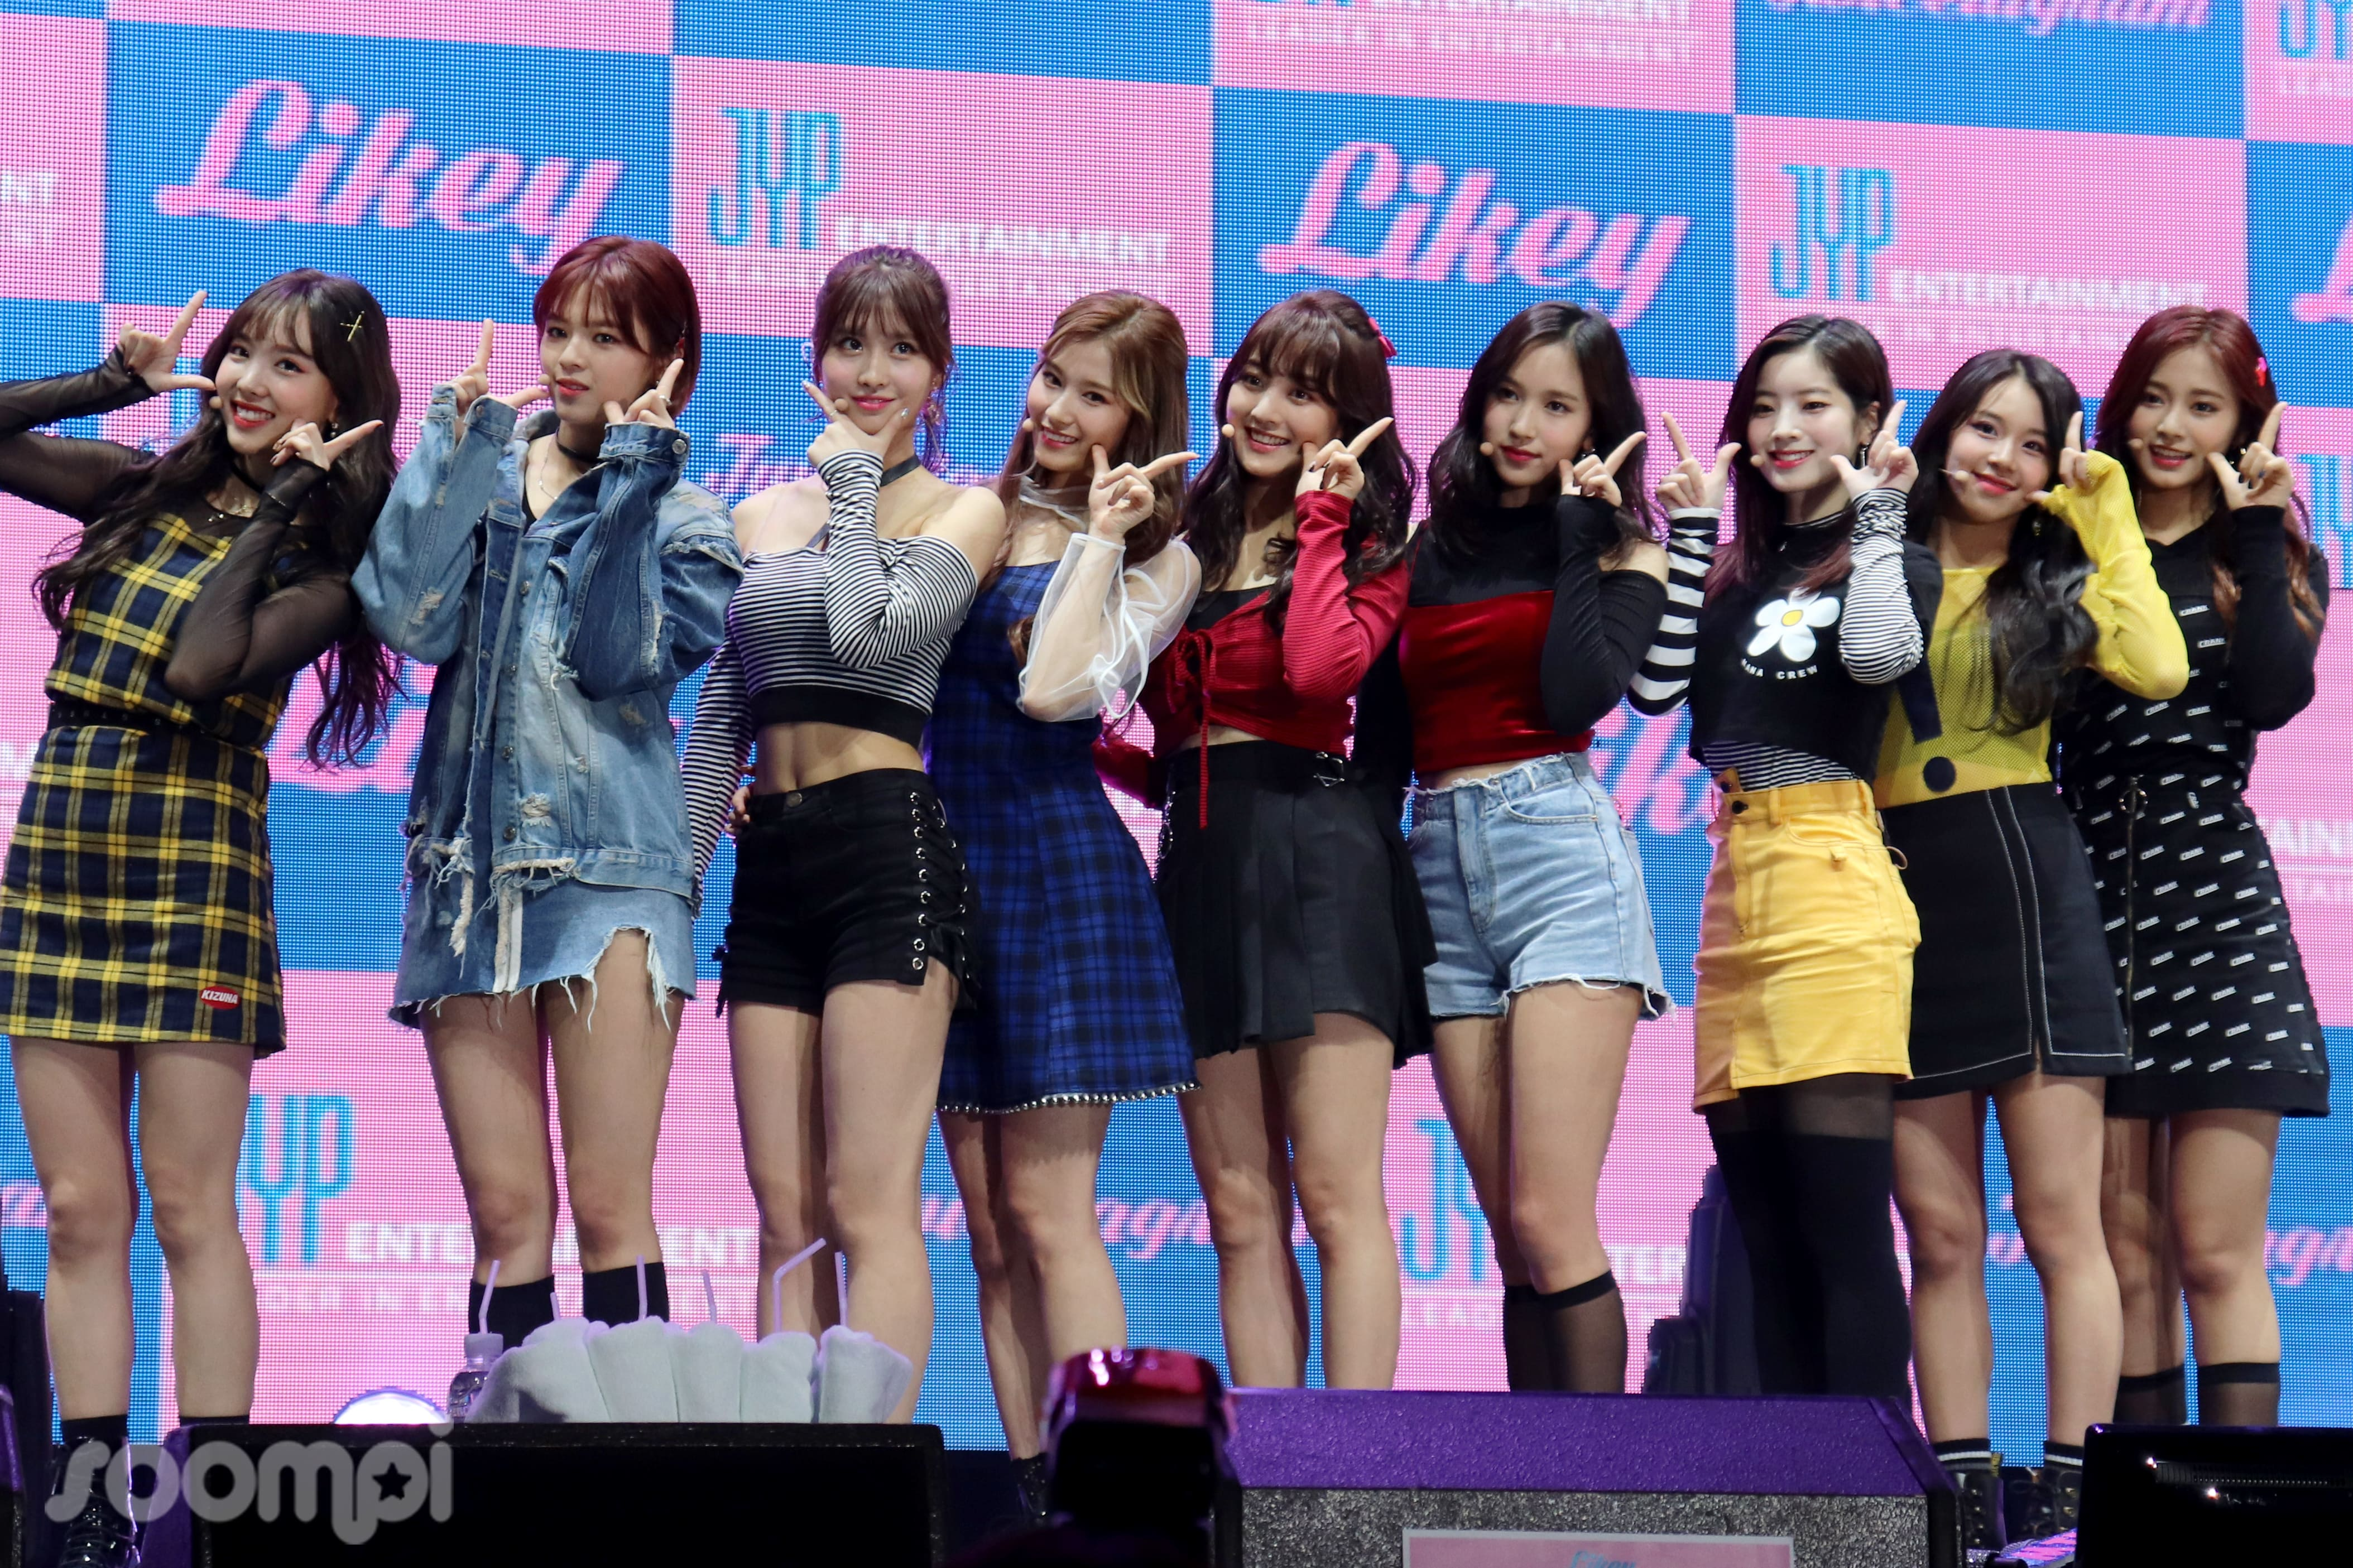 Exclusive: TWICE Reveals Their Goals And Expresses Excitement For Their First Studio Album